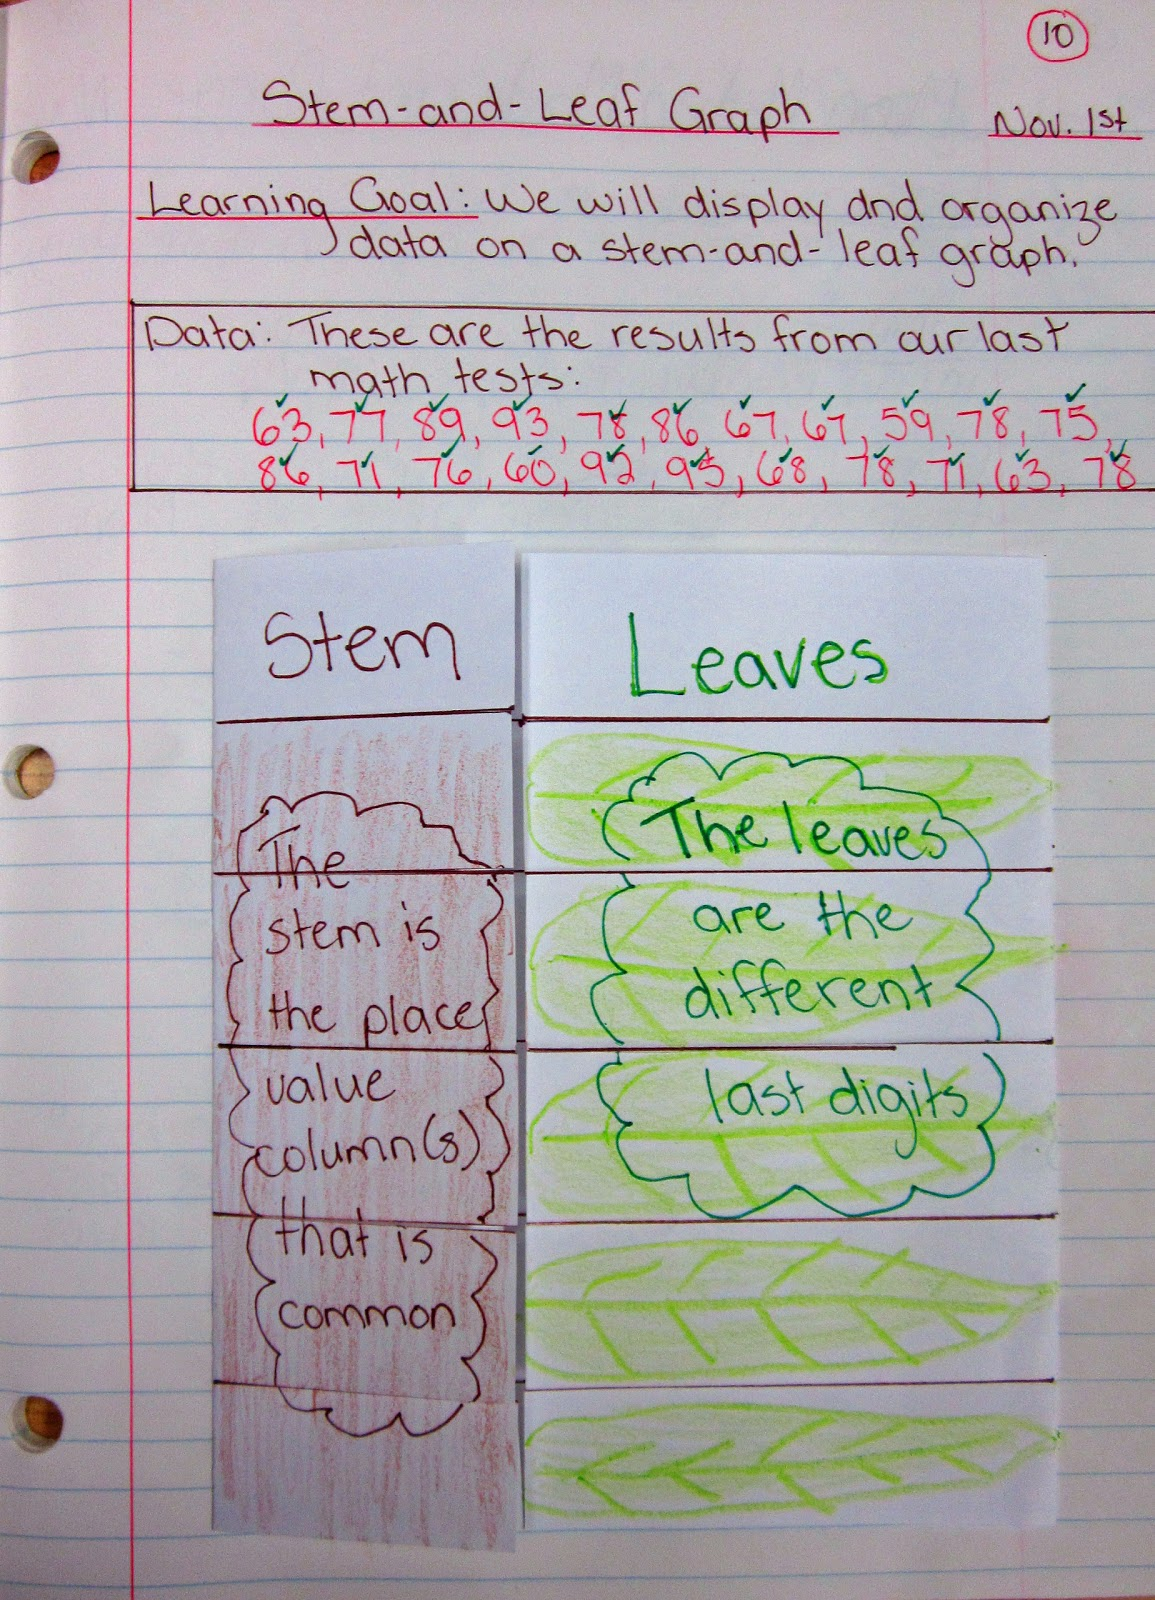 We Used The Results From Our Last Math Test To Make Our Journal Entry For  The Stem And Leaf Plots Whenever Possible, I Try To Incorporate As Many  Reallife